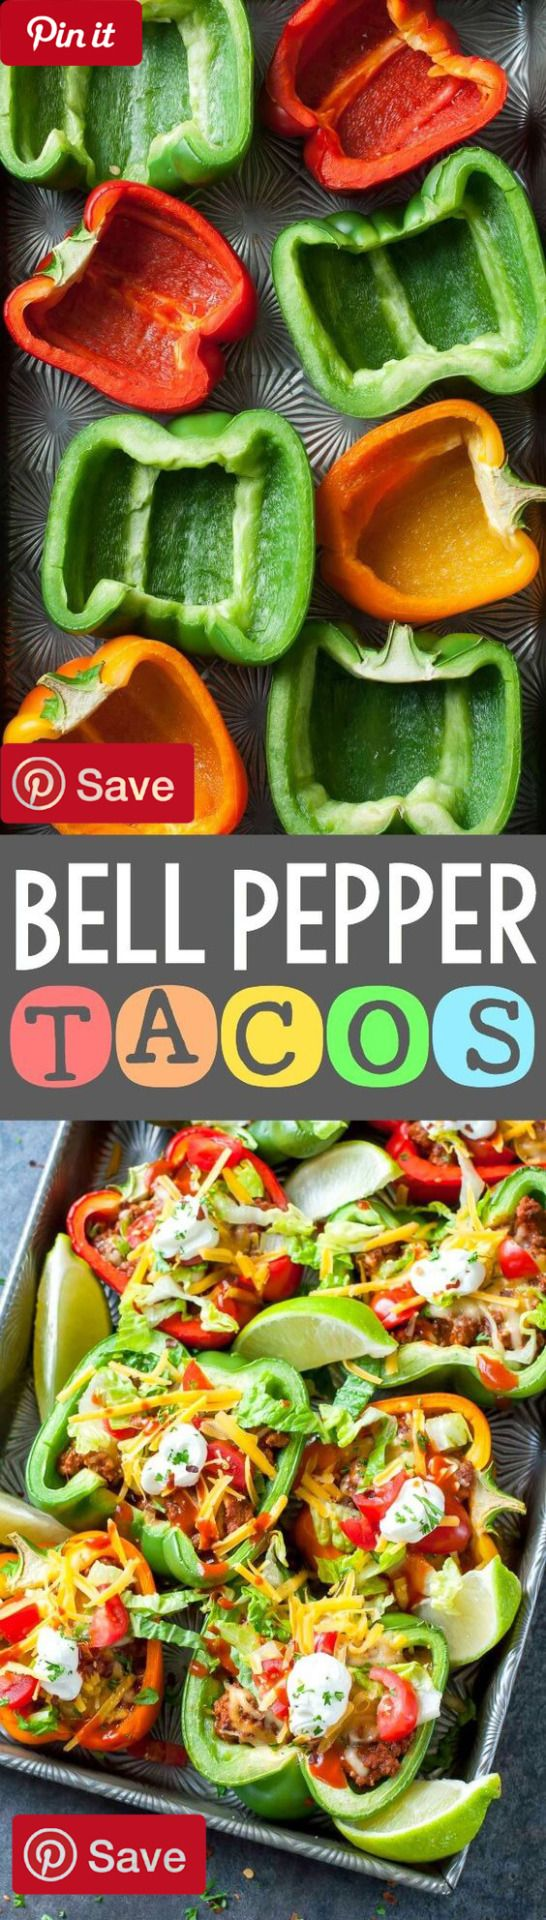 Baked Bell Pepper Tacos 28 mins to make serves 4 - Ingredients Produce 1 Avocado fresh 4 Bell peppers large 1 Cilantro fresh 1 Cilantro and lime 1 Jalapenos cup Lettuce 1 Lime wedges cup Tomato 1 Veggies fresh or leftover roasted Refrigerated 1 cup 3-4 cups seasoned tofu Seasoned Condiments 1 Guacamole 1 Looking for extra crunch? try crumbling a few tortilla chips on top of your bell peppers or serve them with a side of chips and salsa 1 Pico de gallo 1 Salsa 1 Salsa ver...